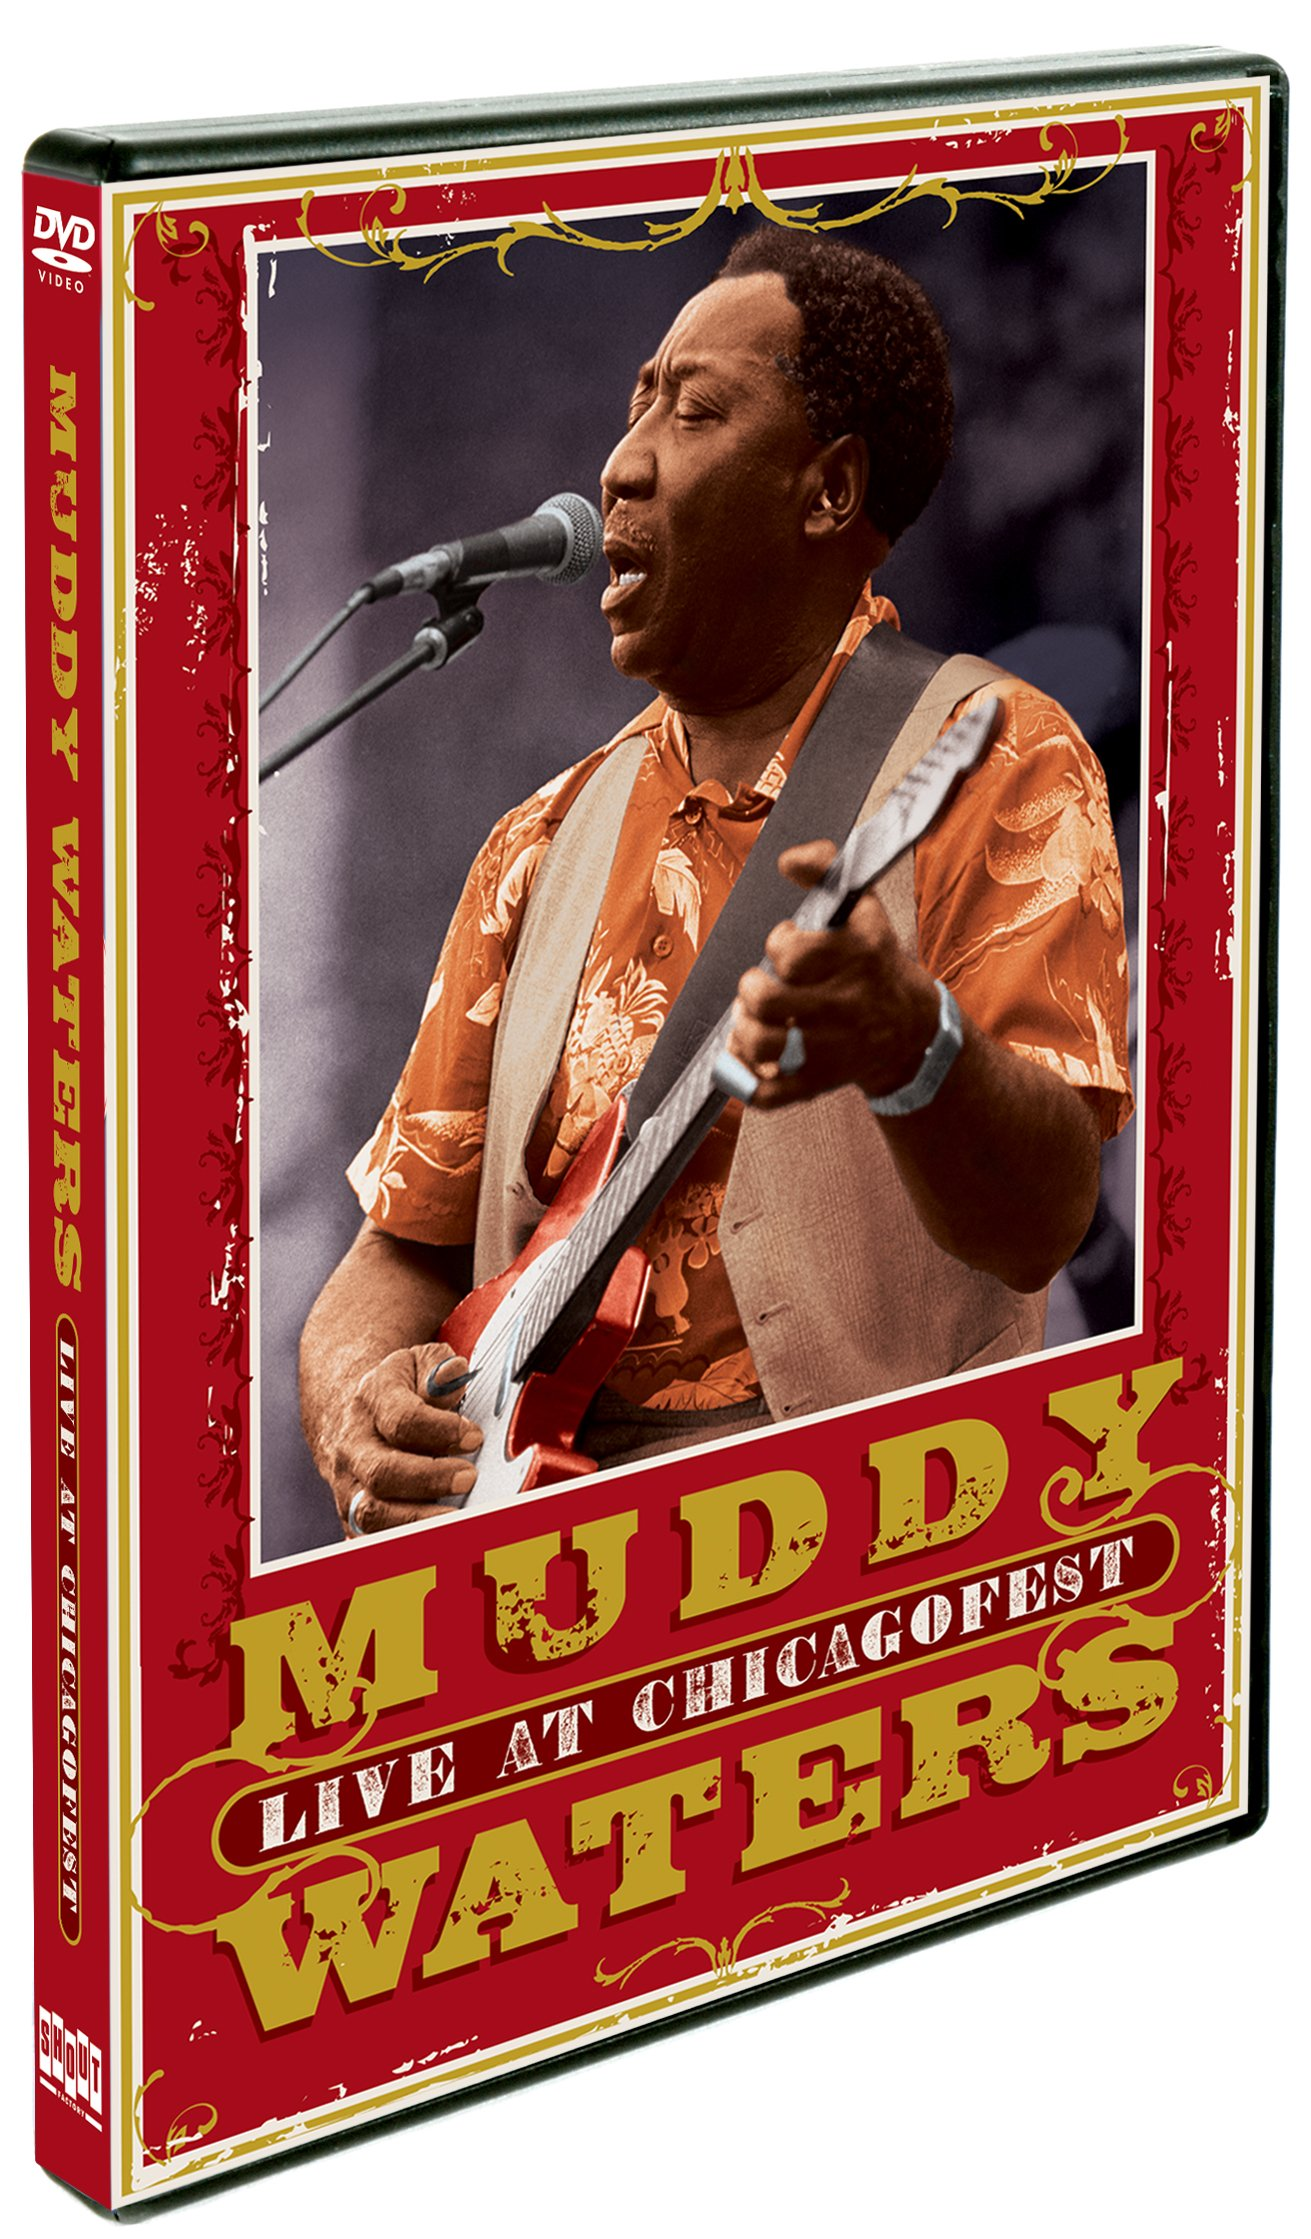 Muddy Waters - Live at Chicagofest (DVD)